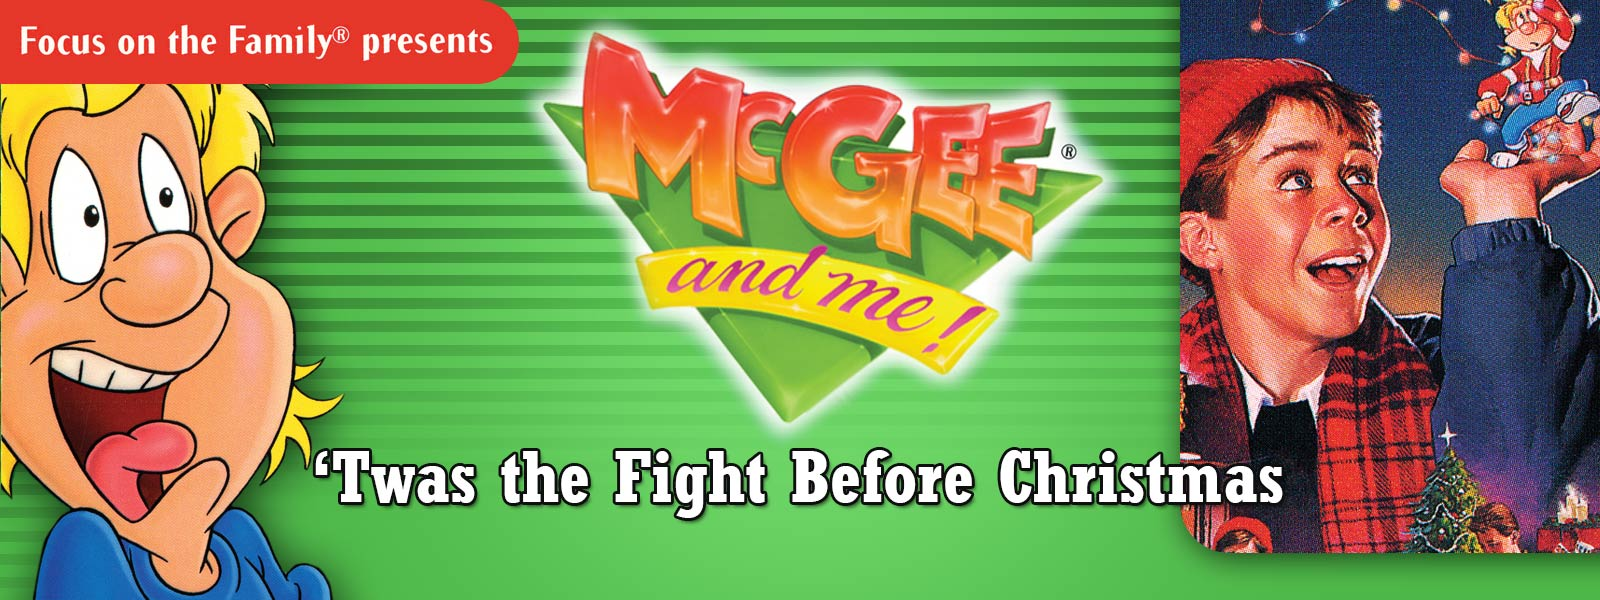 rightnow media streaming video bible study mcgee and me twas the fight before christmas tyndale house - The Fight Before Christmas